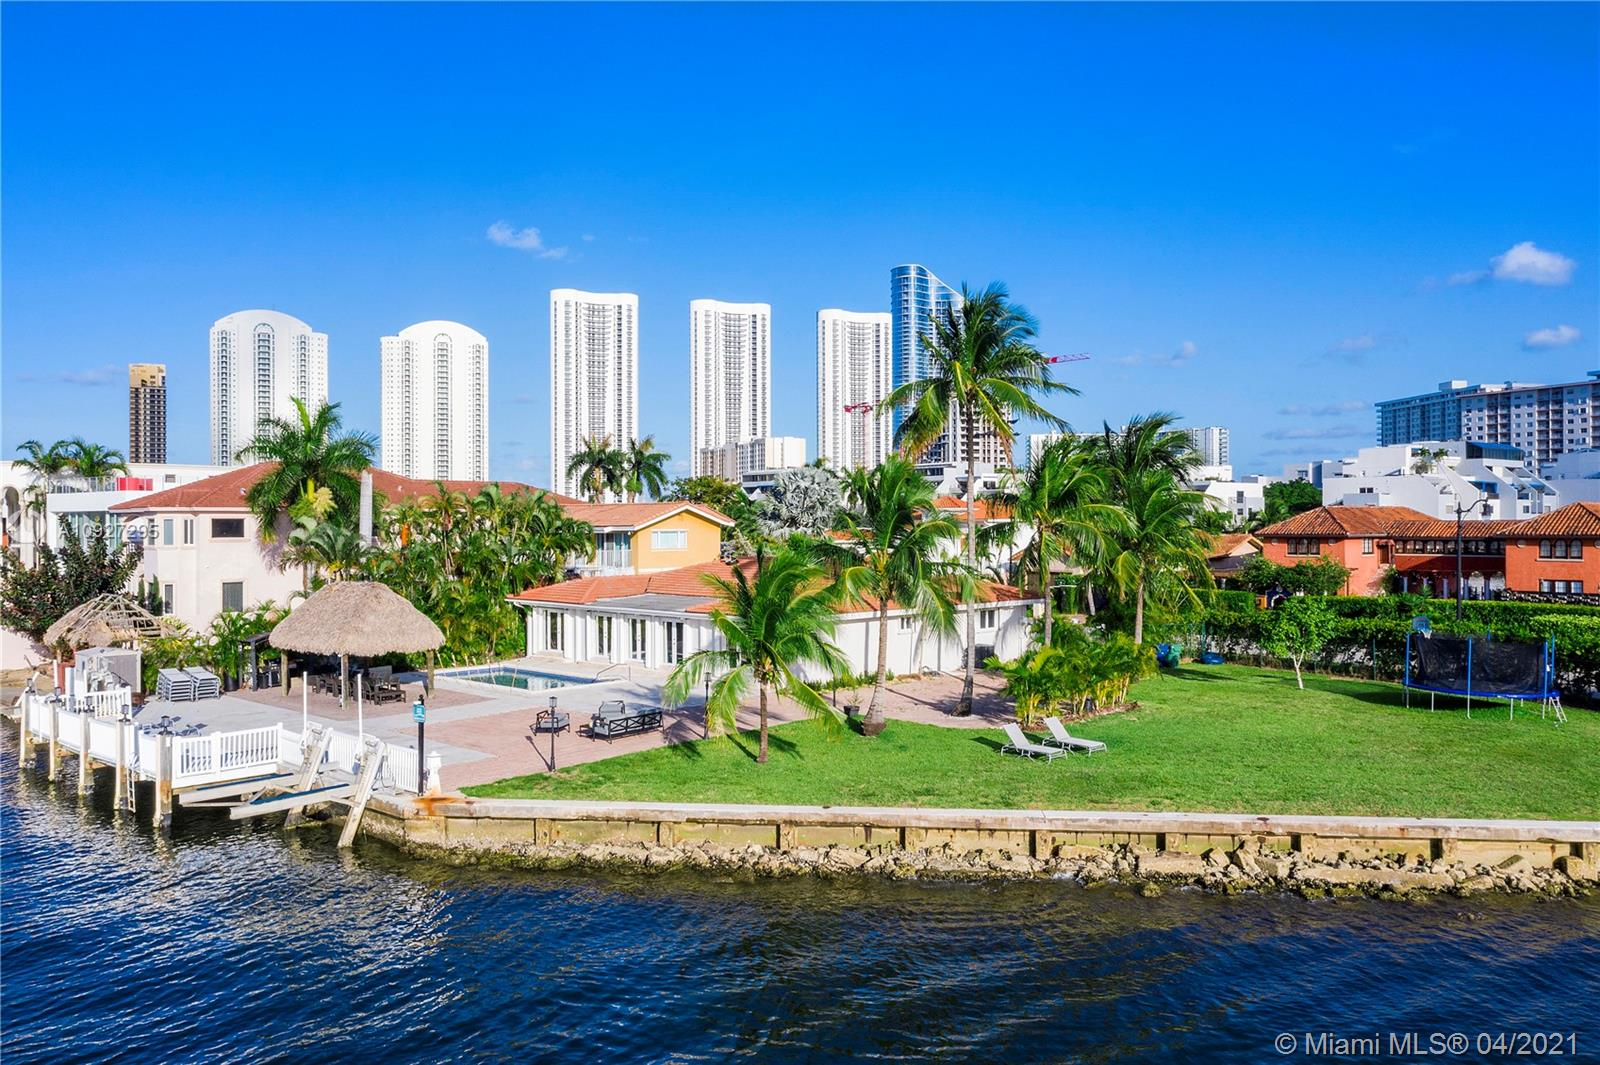 21000 SQF  POINT LOT WITH 250 LINEAR FT OF WATERFRONTAGE!!!! ORIGINALLY 2 LOTS COMBINED INTO ONE, PROBABLY ONE OF THE BEST LOTS IN SOUTH FLORIDA !!!   PRIVACY  AND UNOBSTRUCTED VIEWS FOREVER.  THE HOUSE HAS CLOSE TO 3000 SQF , OPEN FLOORPLAN WITH VIEWS FROM EVERYWHERE, HOWEVER THE POSSIBILITIES ARE ENDLESS TO BUILD YOUR CLIENT'S DREAM MANSION.